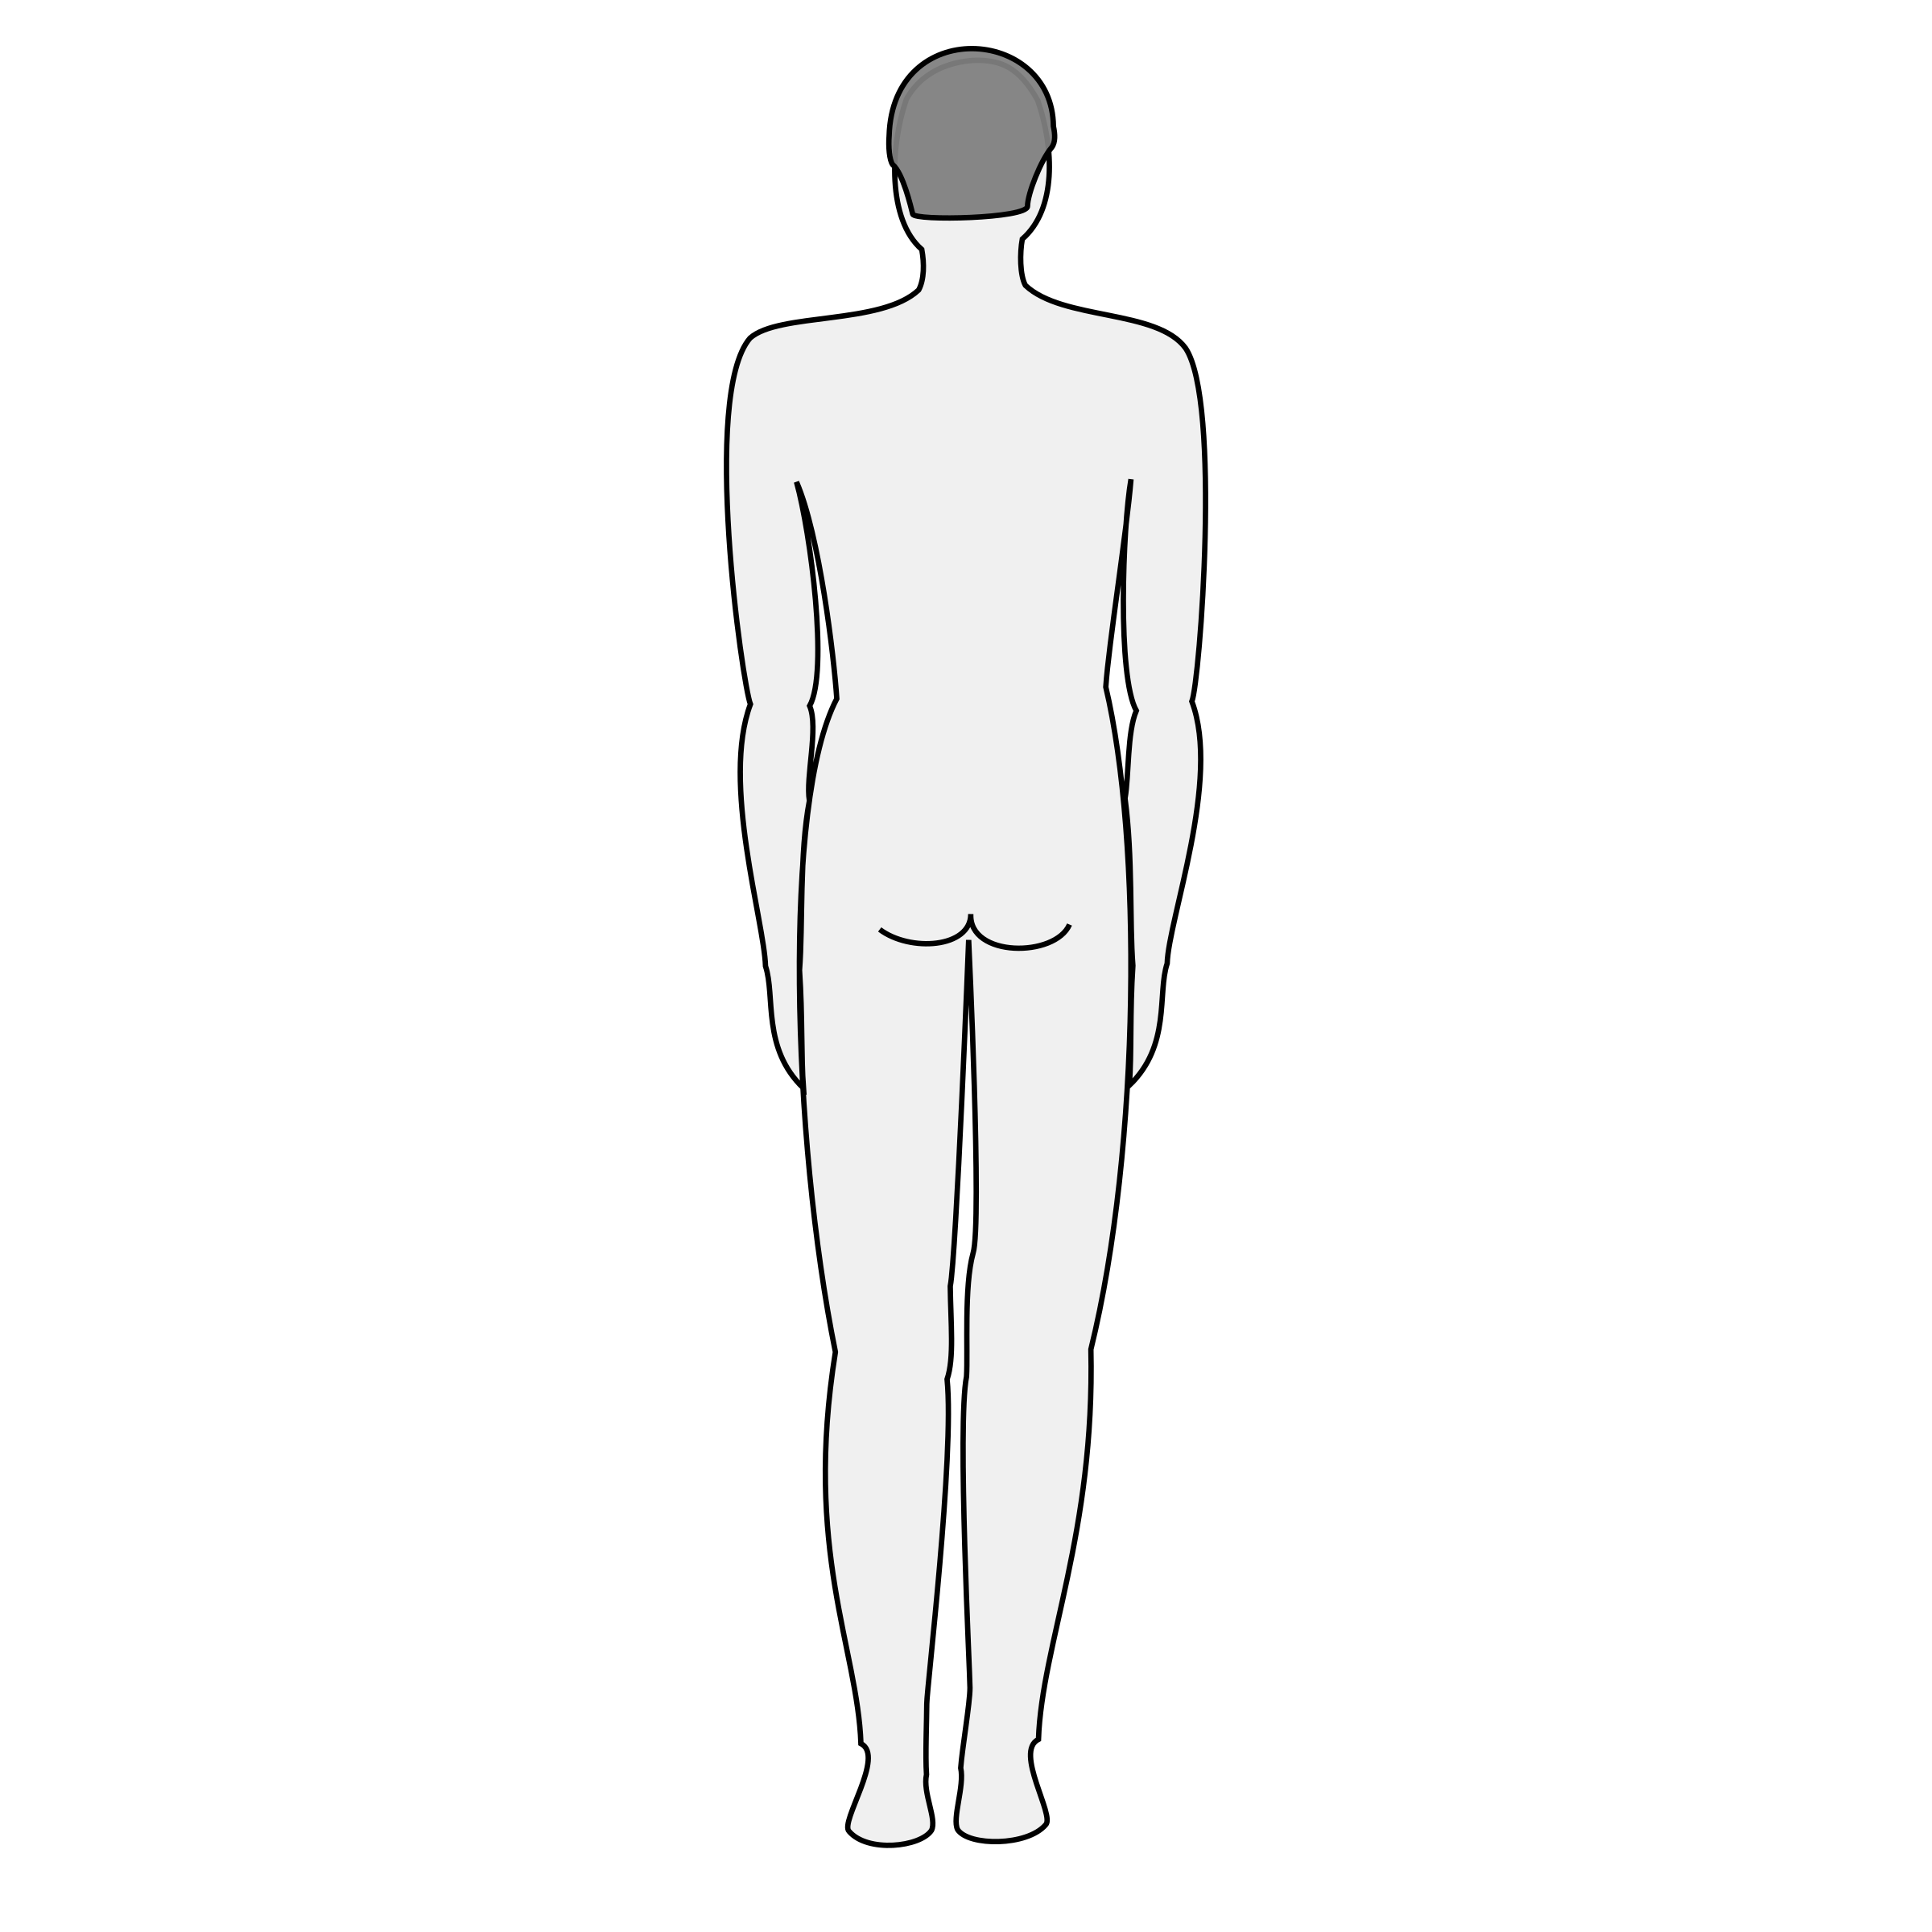 Male silhouette big image. Back clipart body back